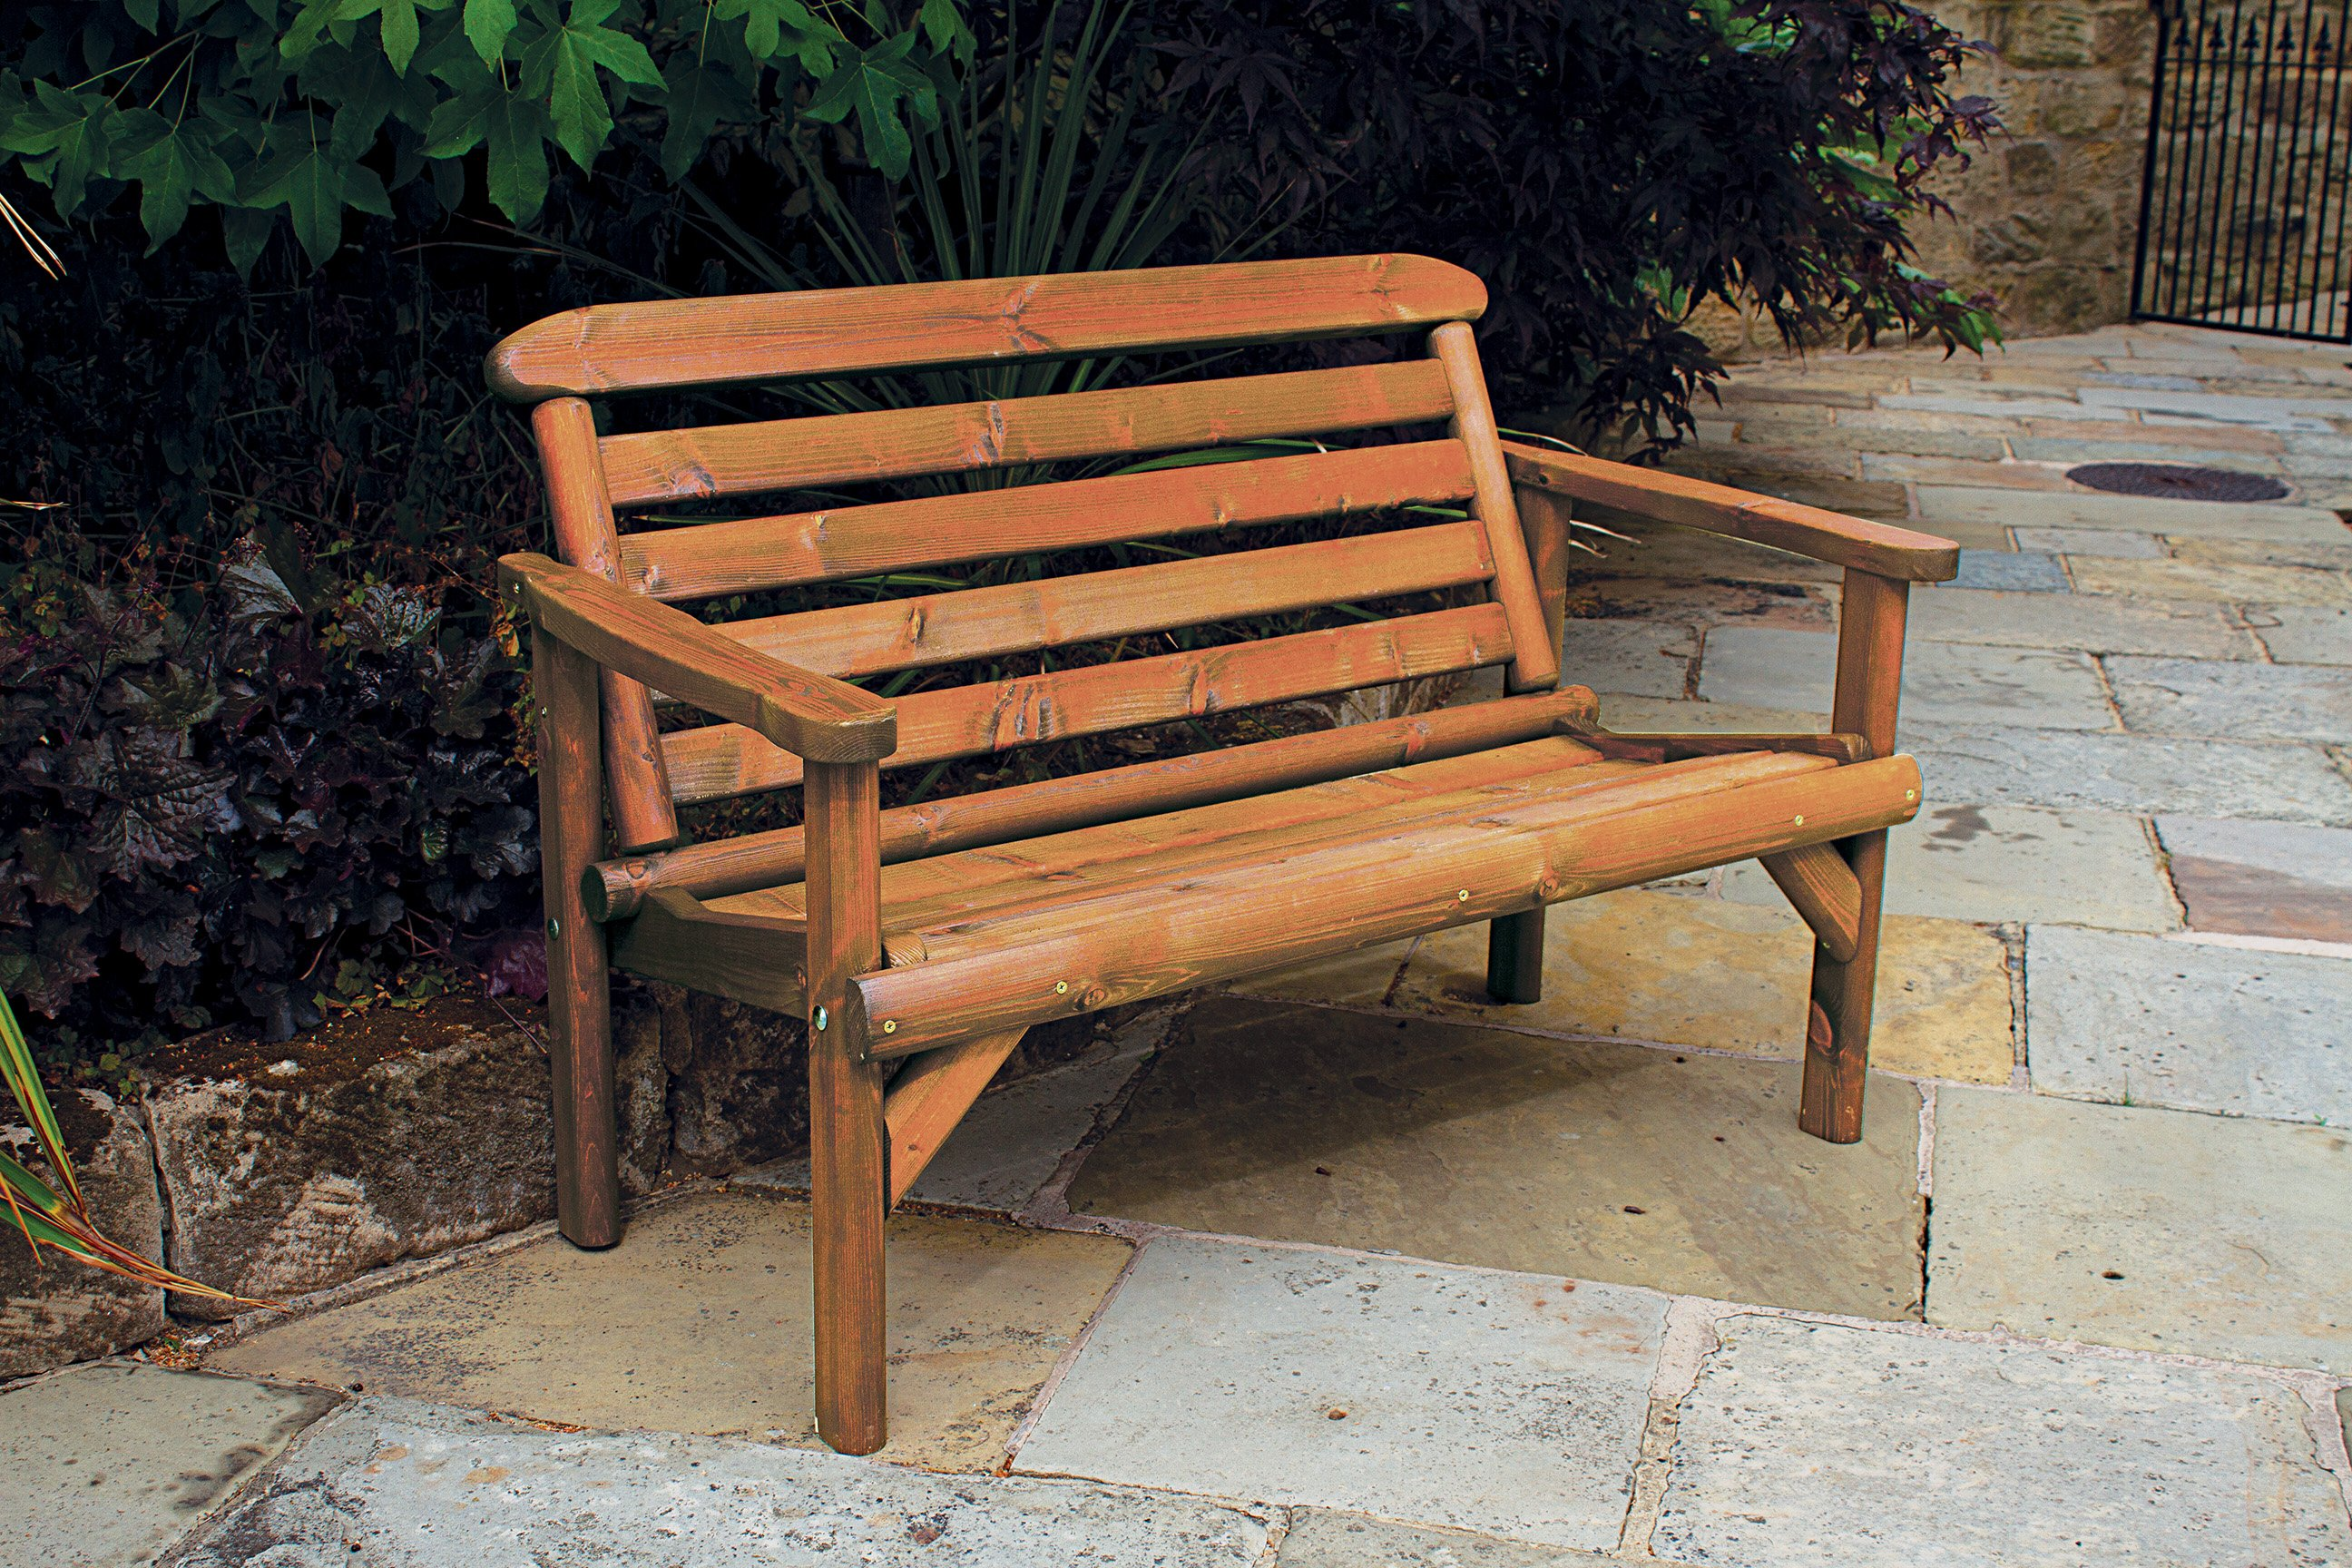 Woodshaw Thornton Rustic Bench 4ft 2 Seater Simply Wood